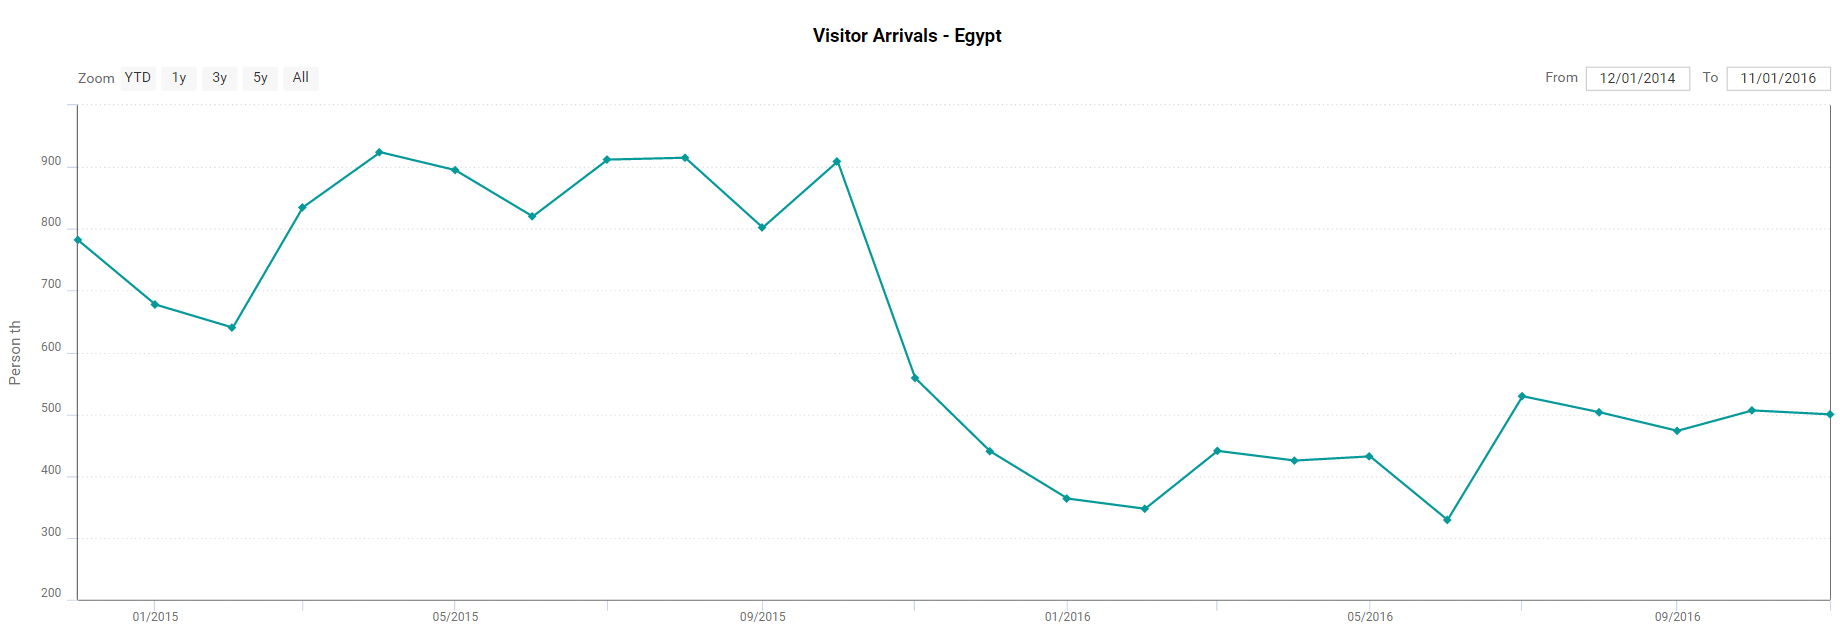 Egypt visitor arrivals graph